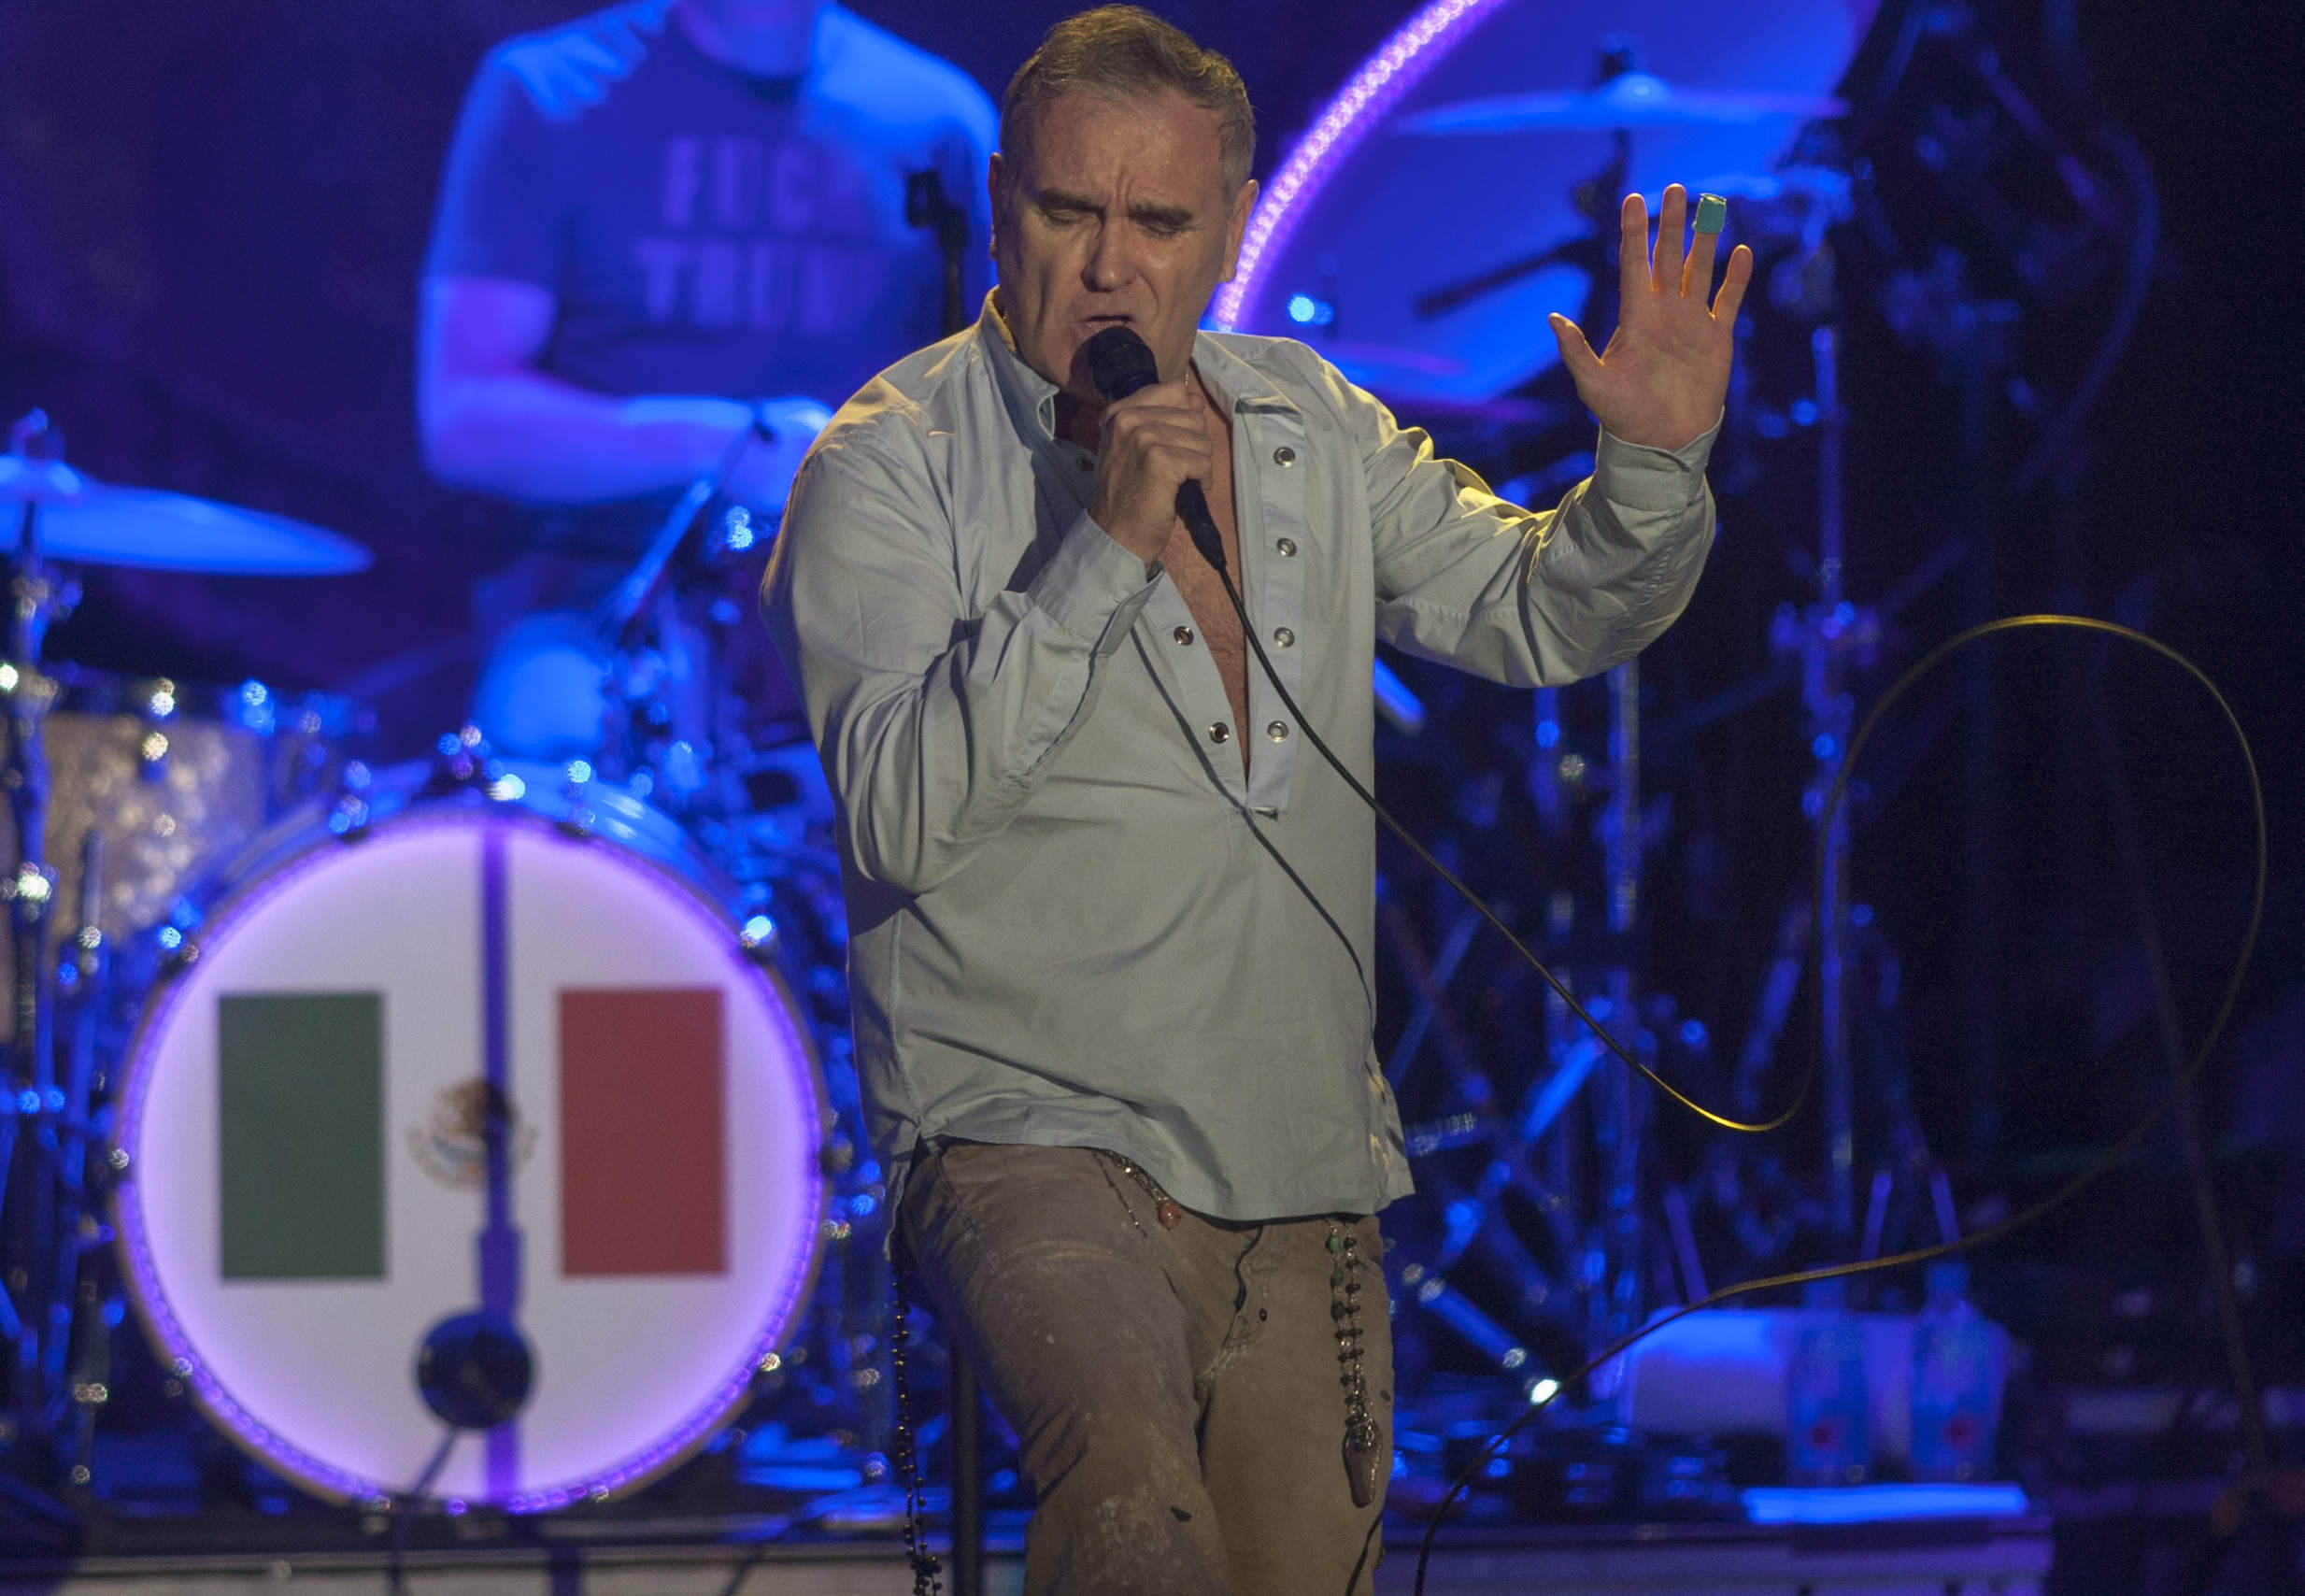 The years have proved the only thing Morrissey understood was himself